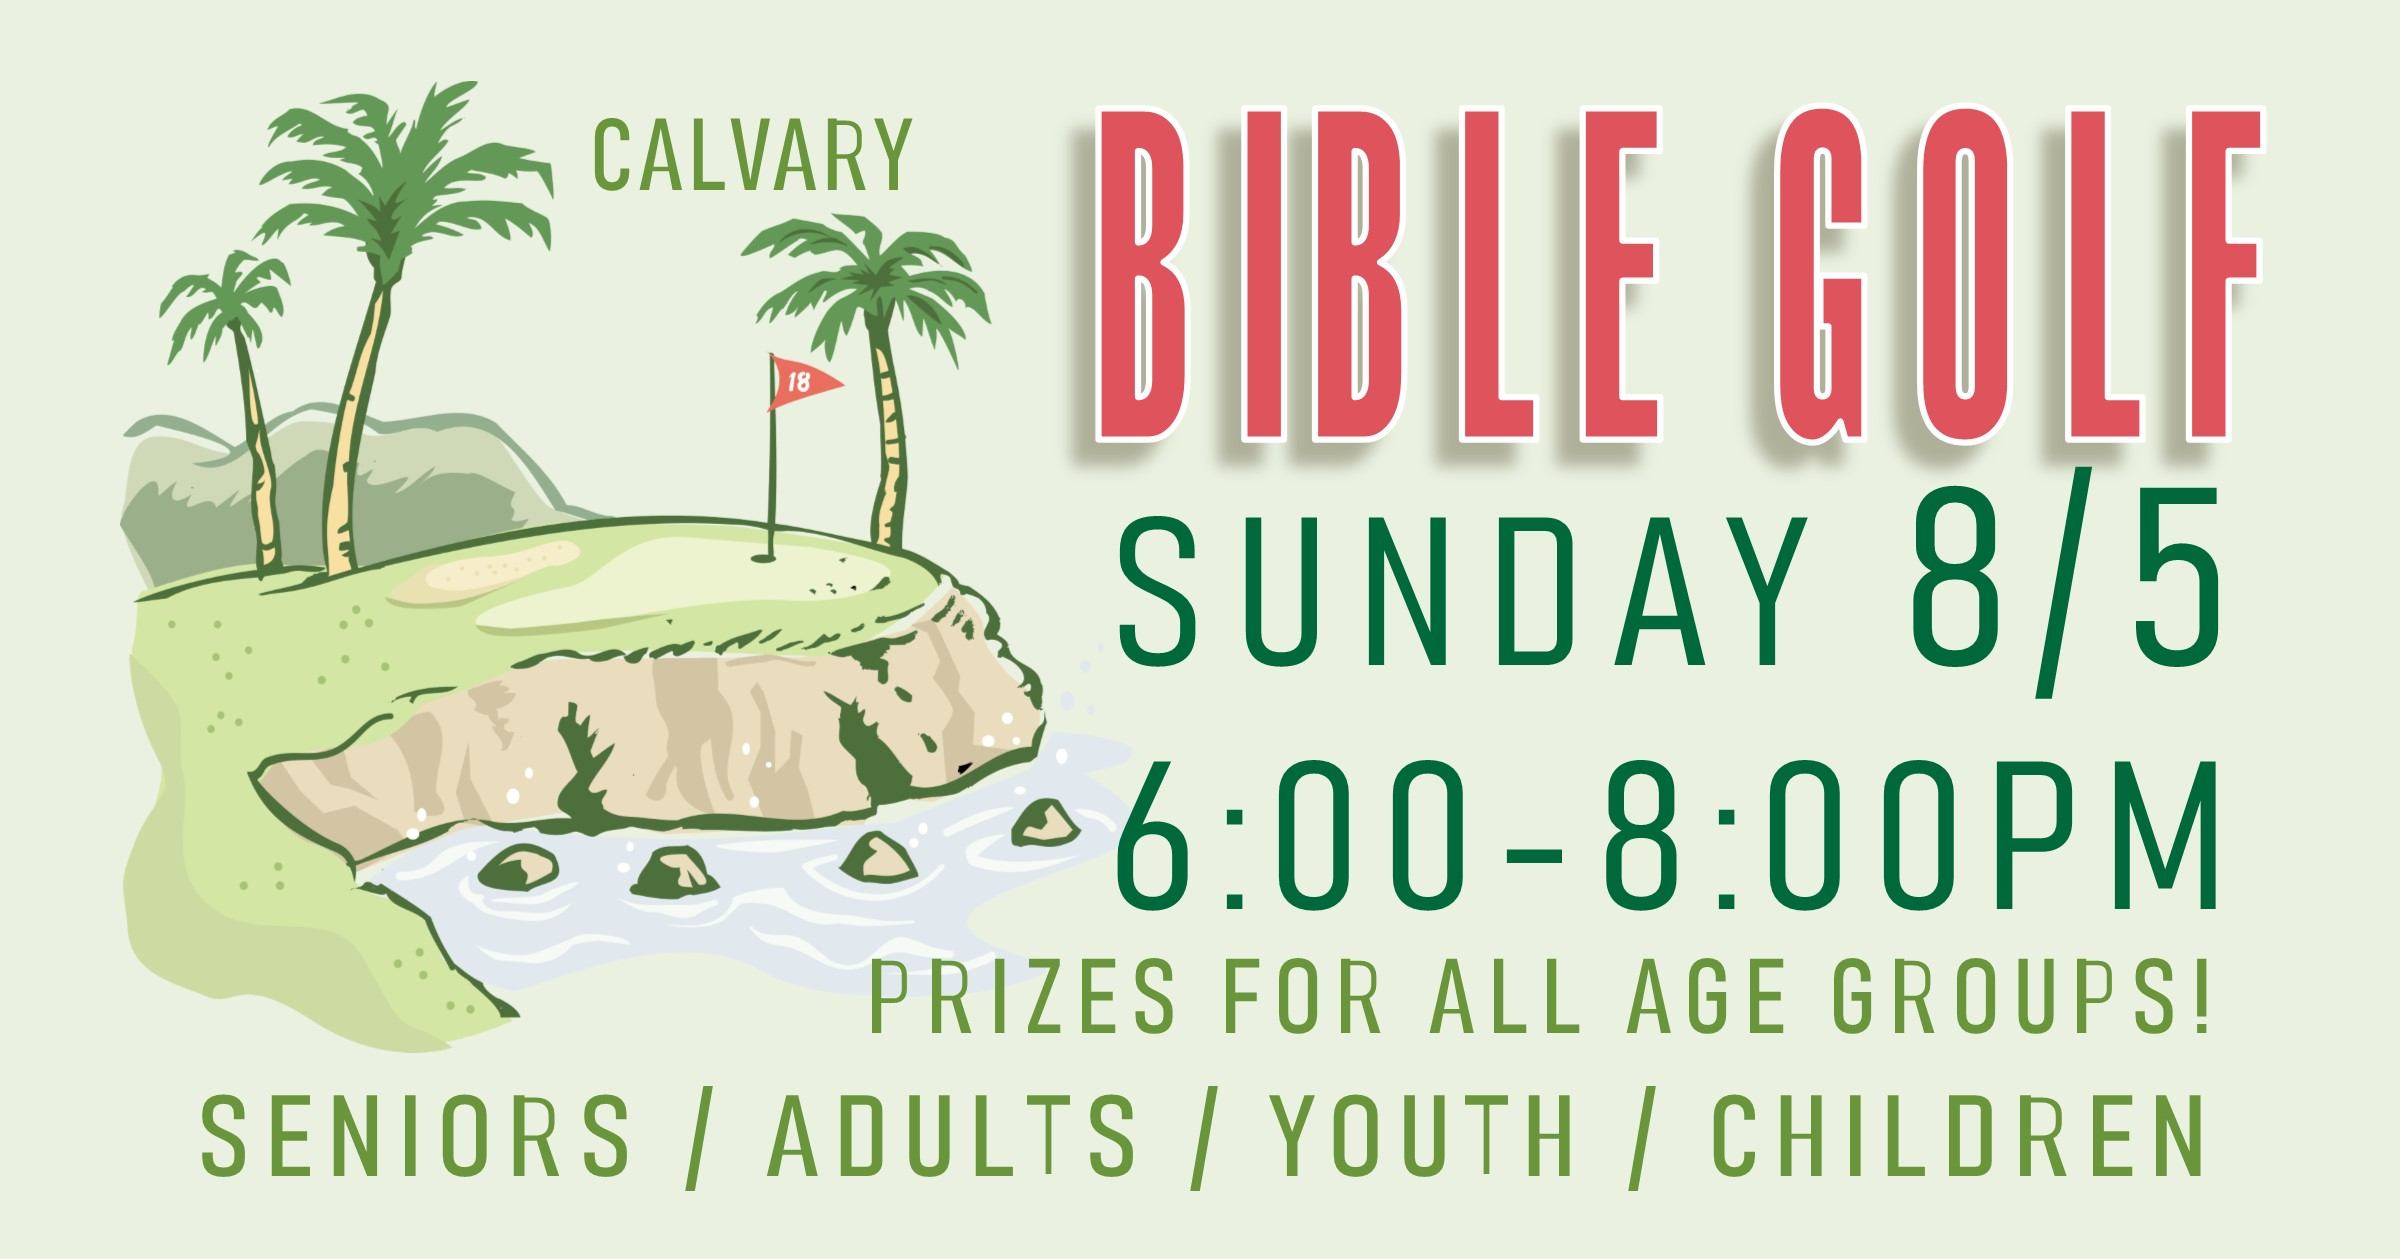 Bible Golf Facebook Link Post Rev 071918.jpg